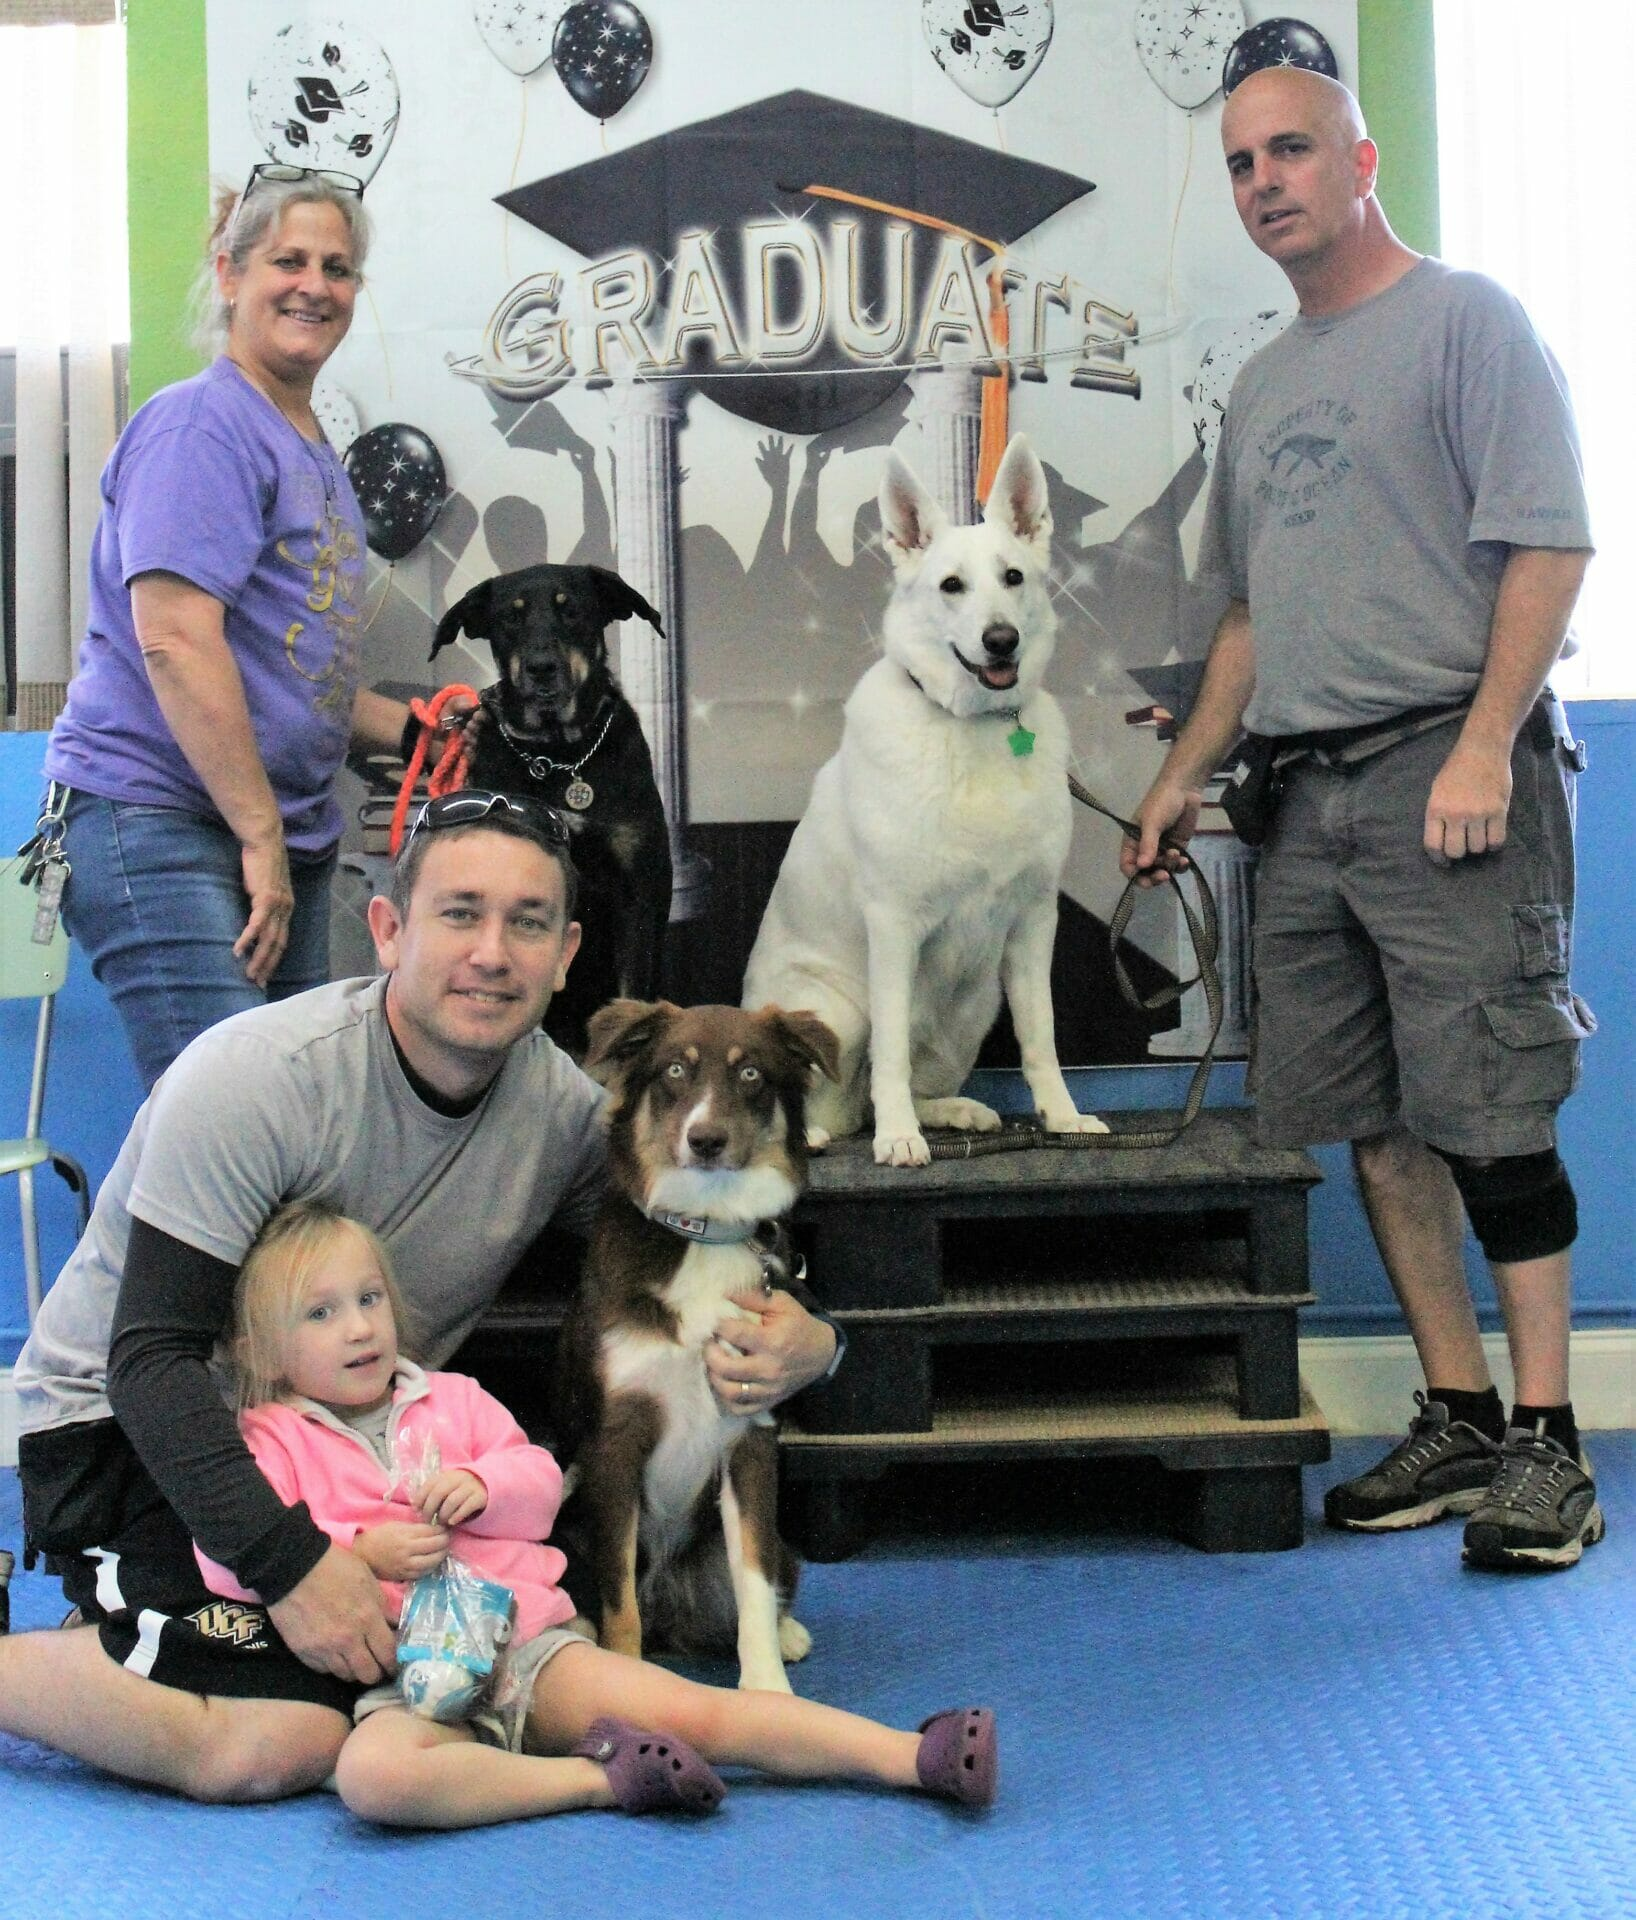 Obedience Challenges Class graduation photo taken at Rockin' Dawgs Positive Dog Training facility in Rockledge, FL